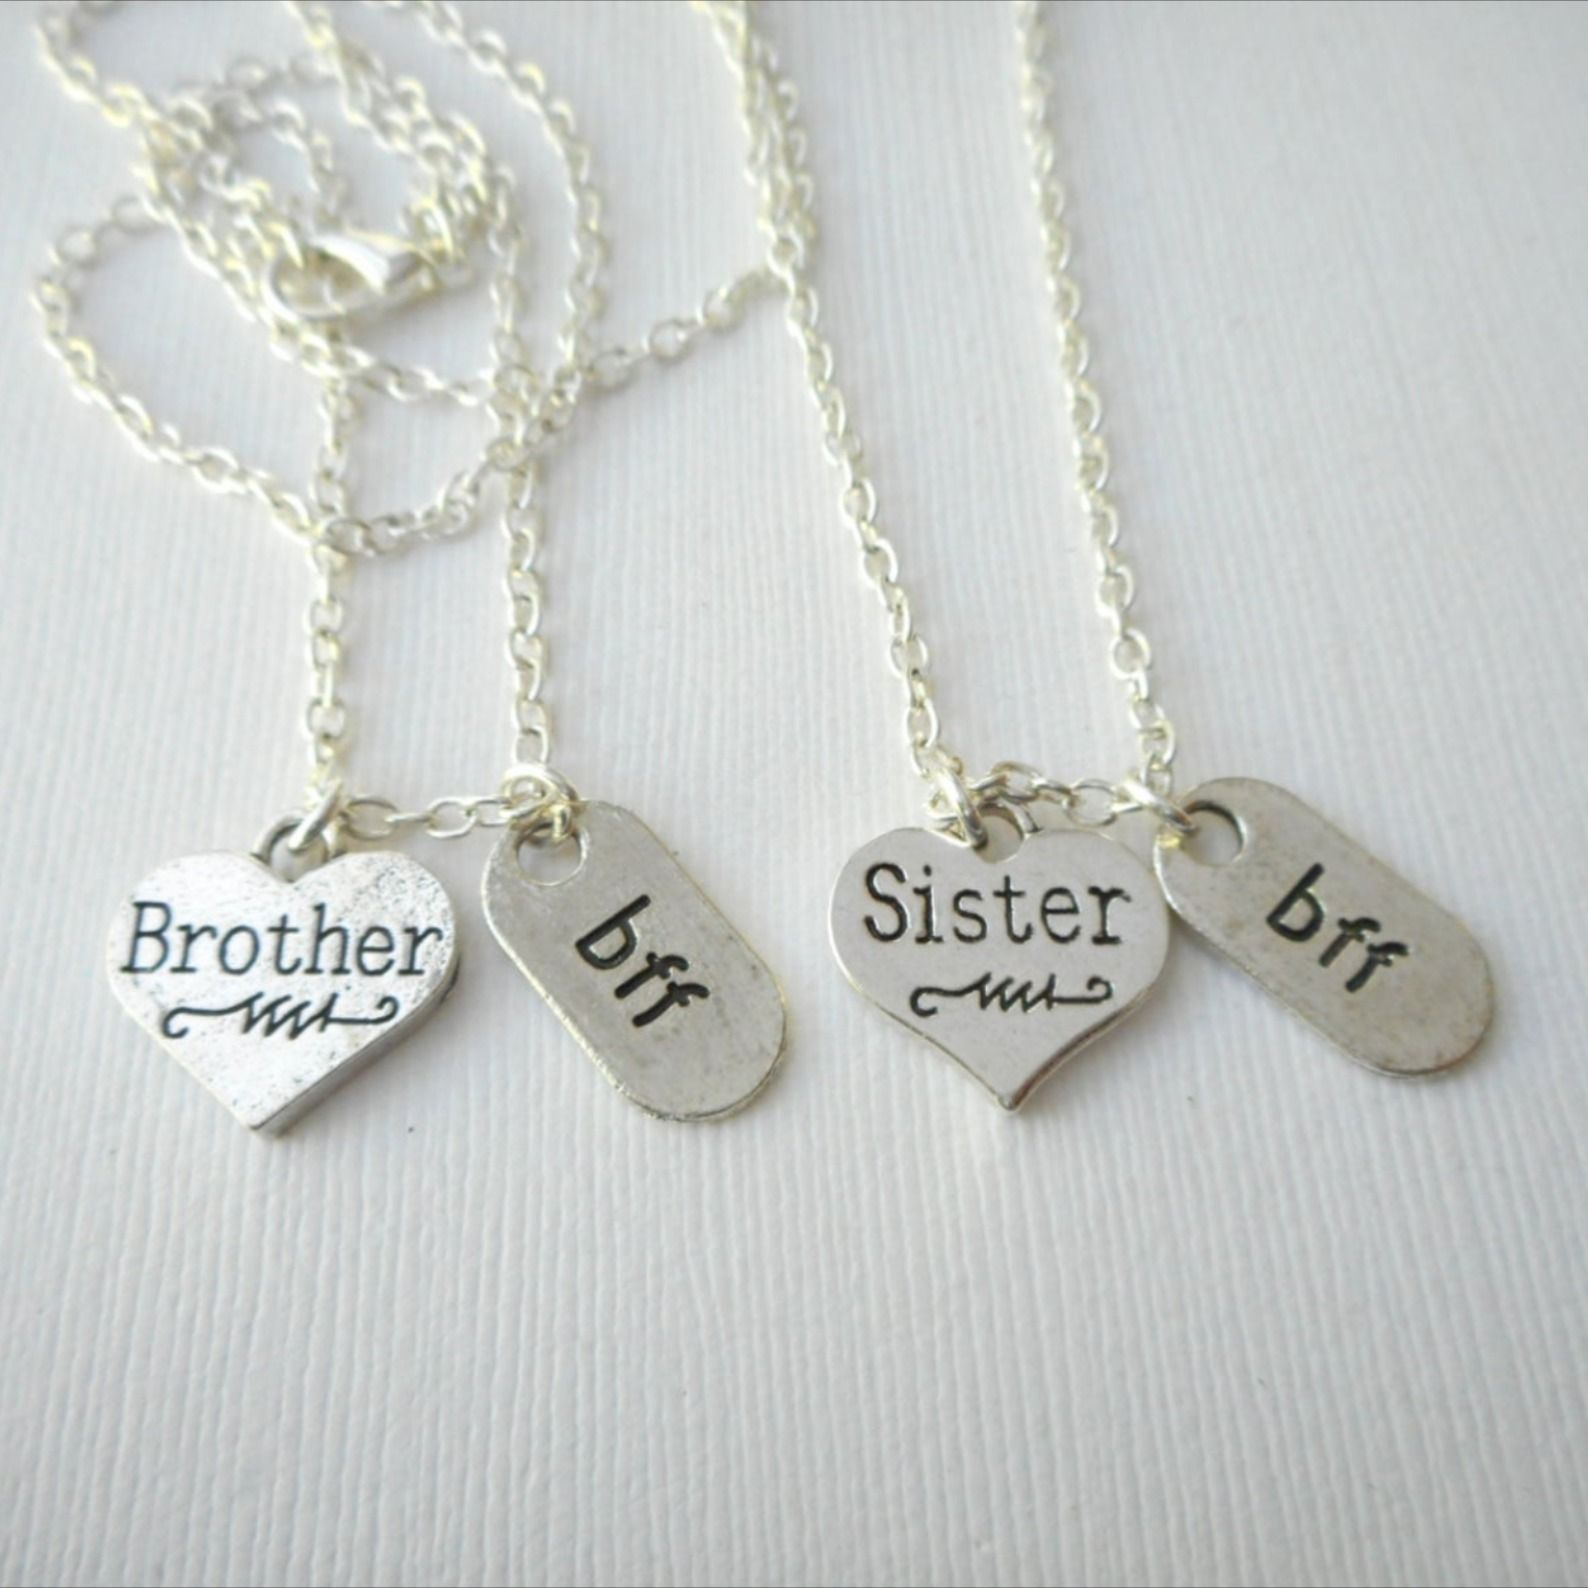 2 brother sister bff necklaces brother and sister